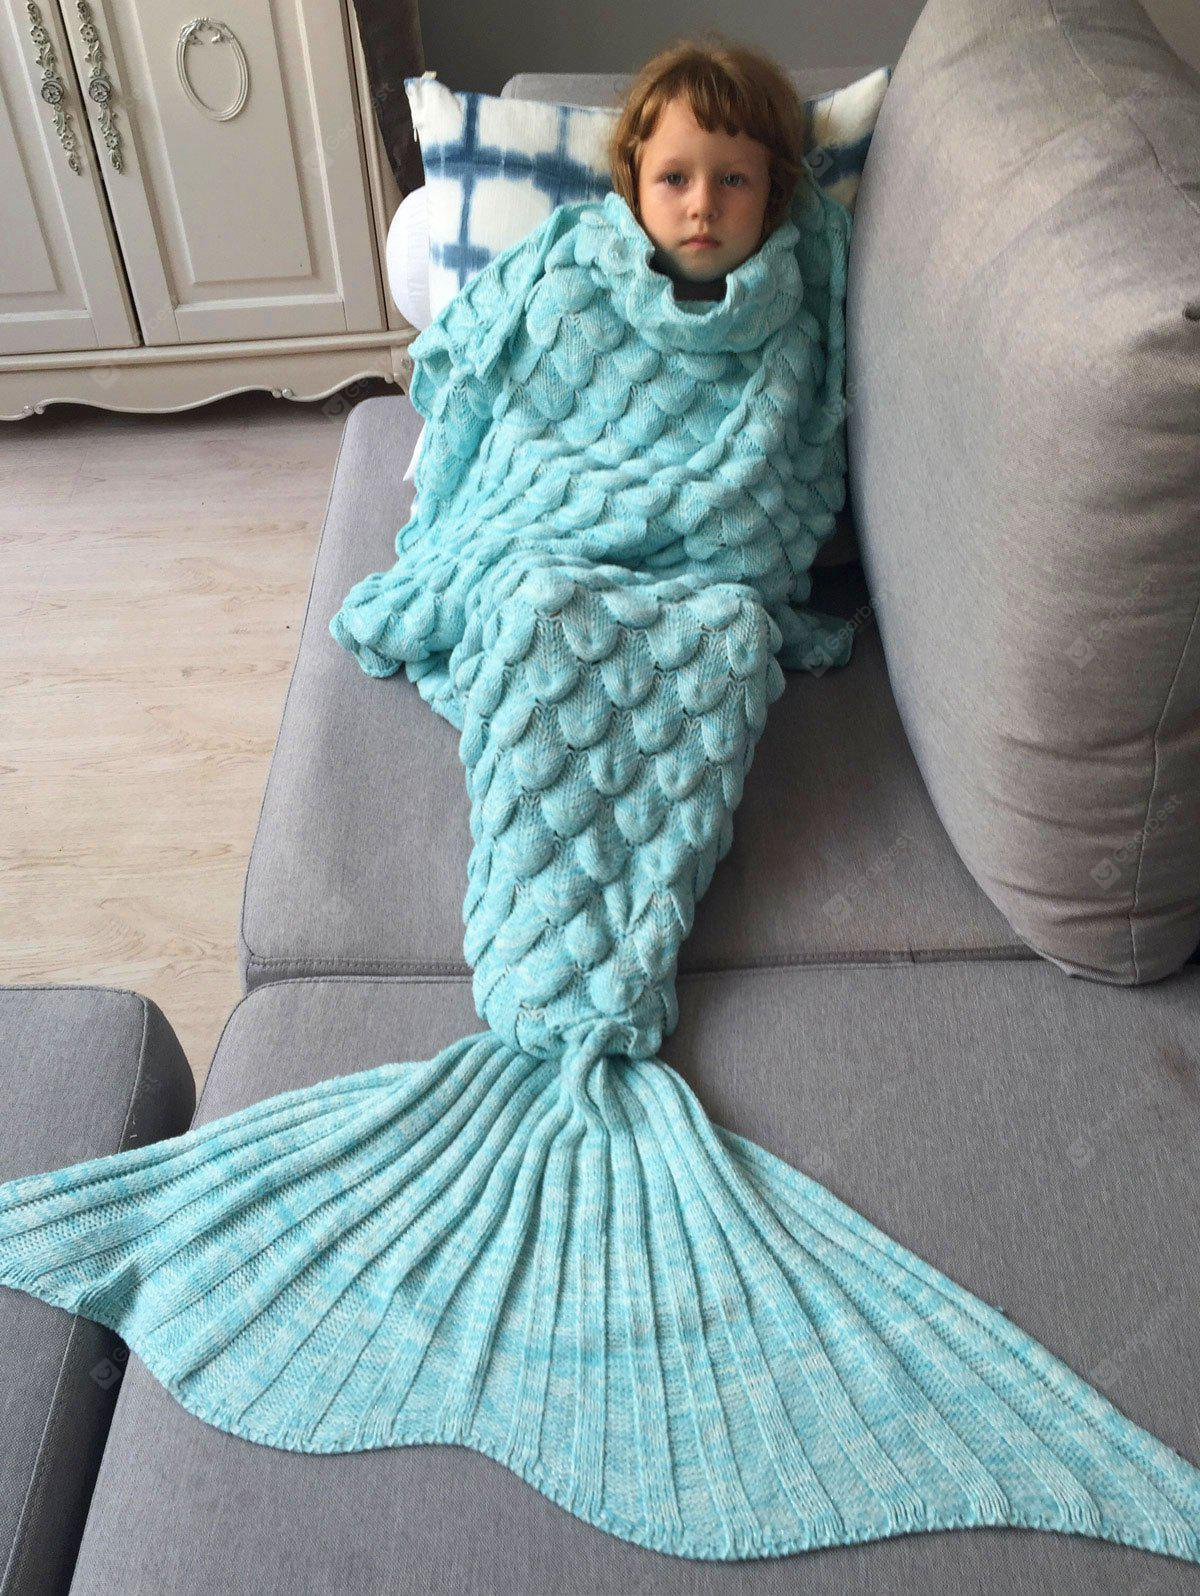 AZURE Knitted Fish Scales Design Wrap Mermaid Blanket and Throws For Kids